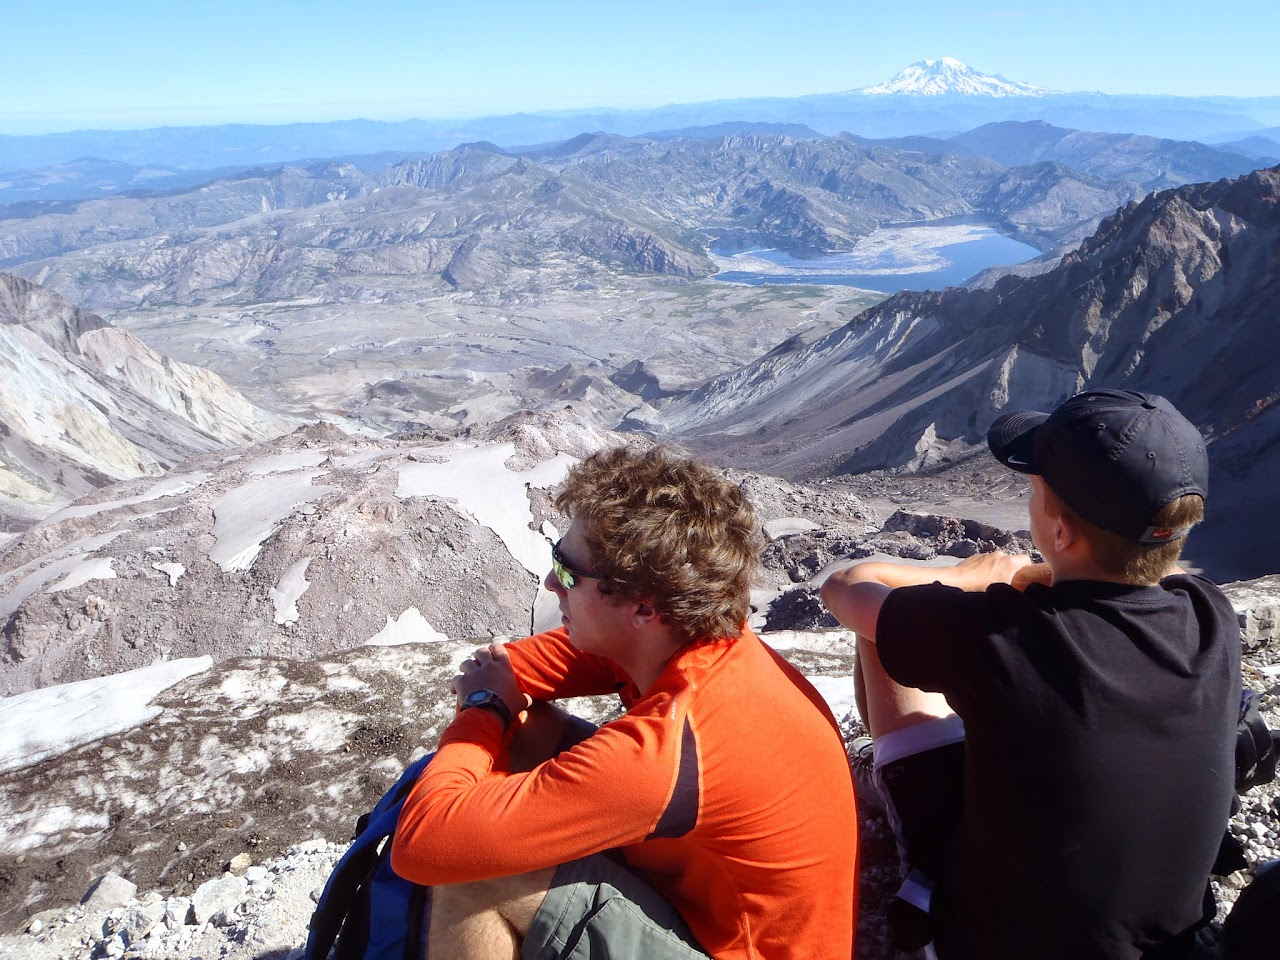 Mount Saint Helens Summit 2014 - P7310166.JPG